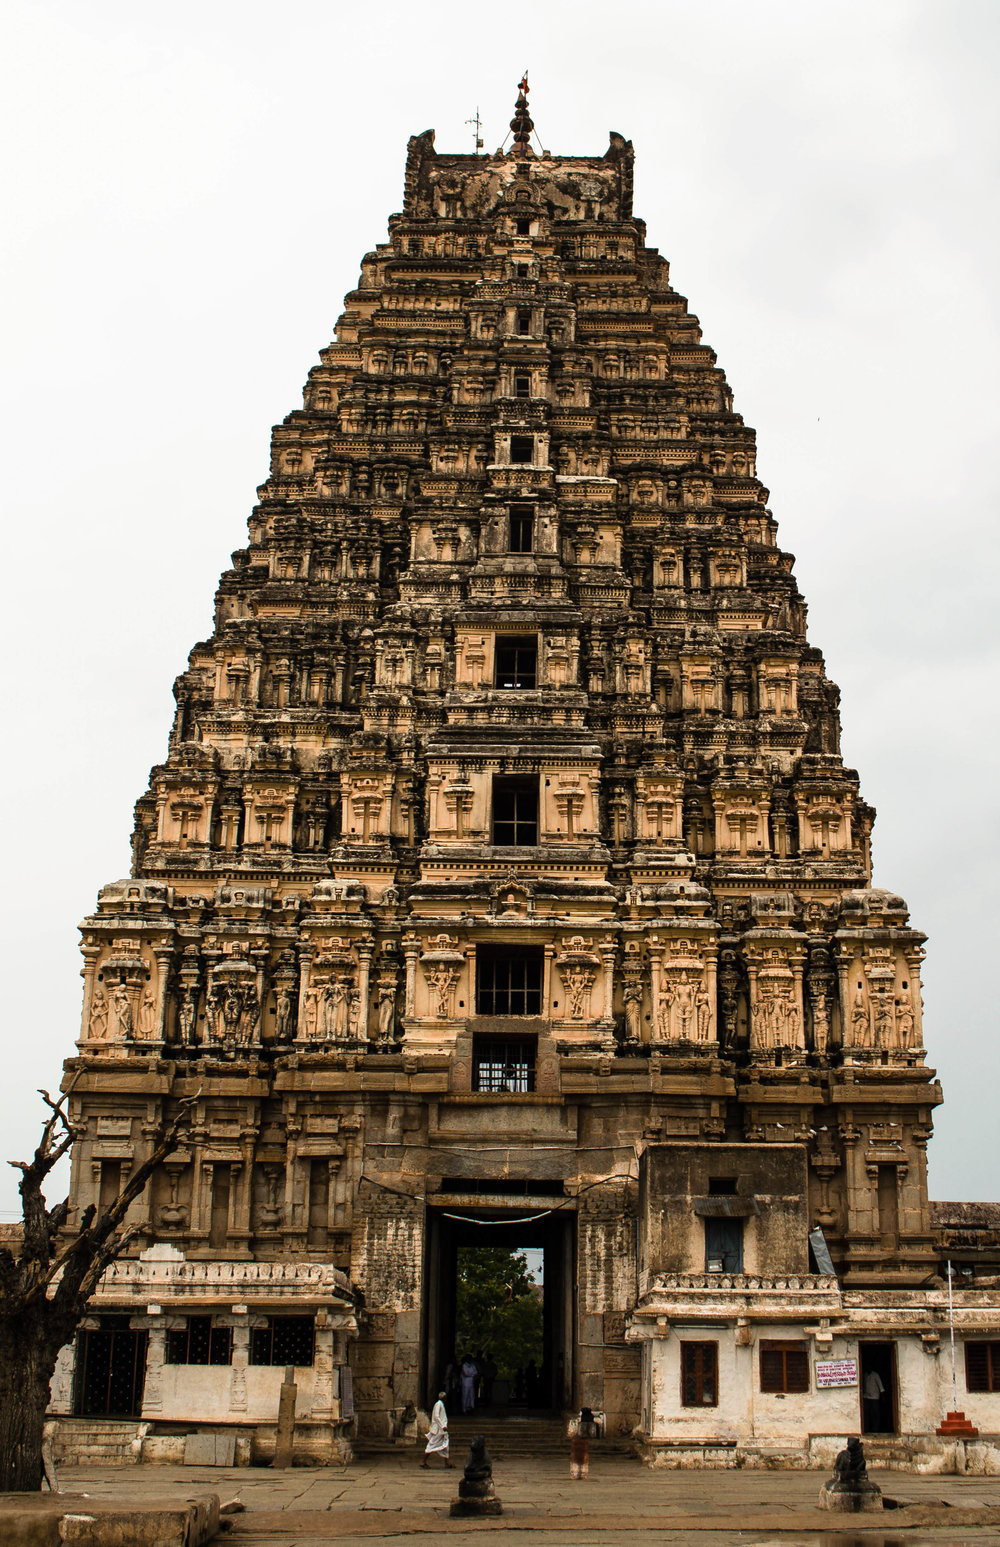 Virupaksha Temple, built in honor of the king's victory